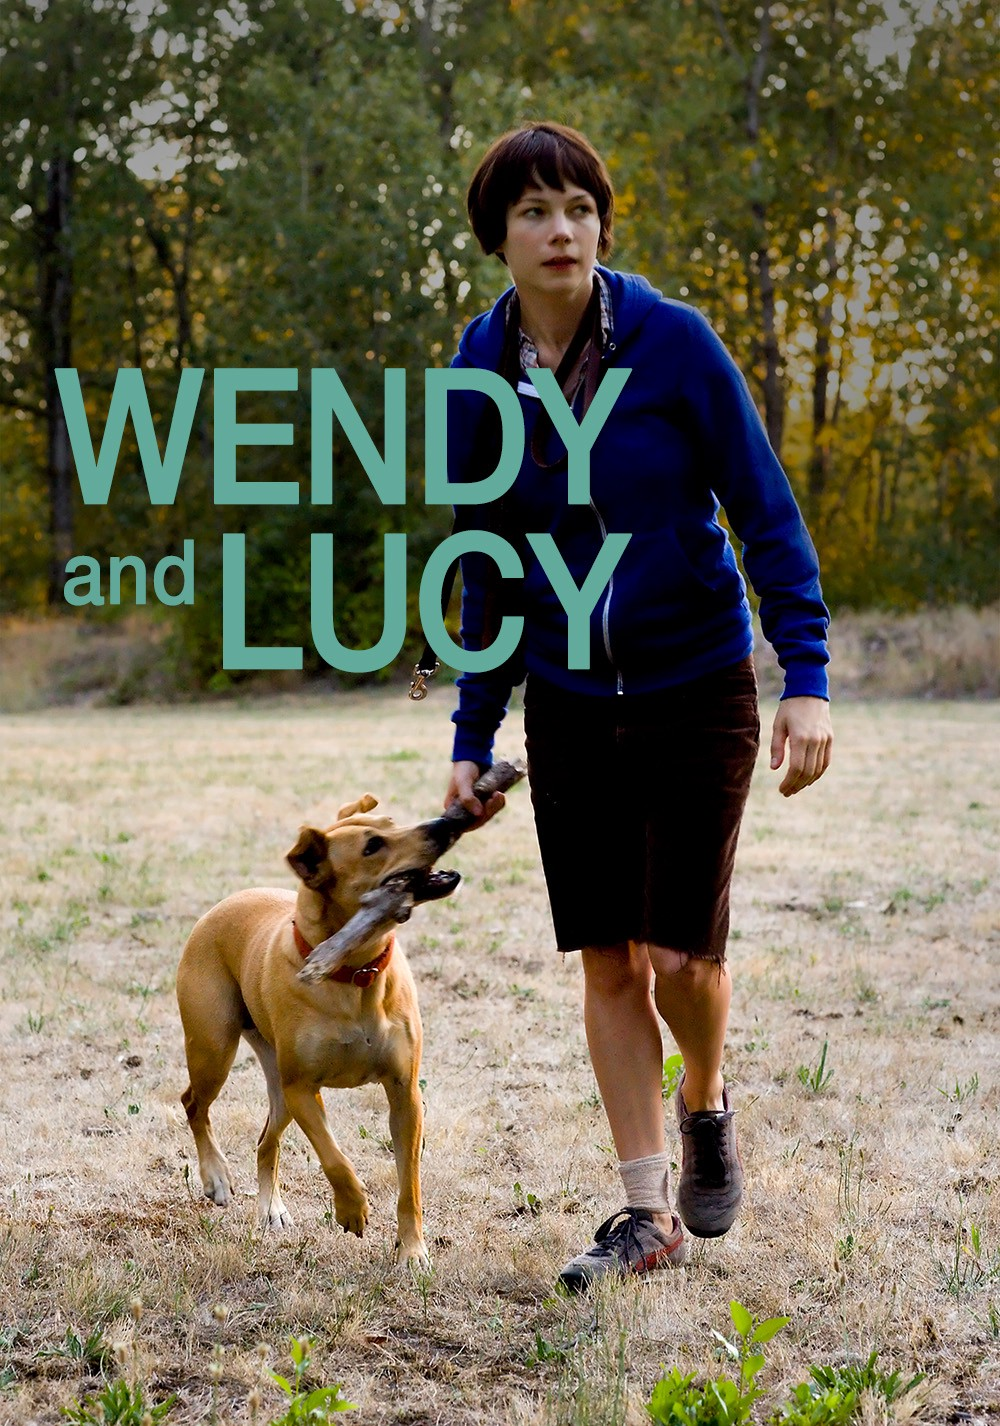 A woman in a blue jacket plays fetch with her dog.